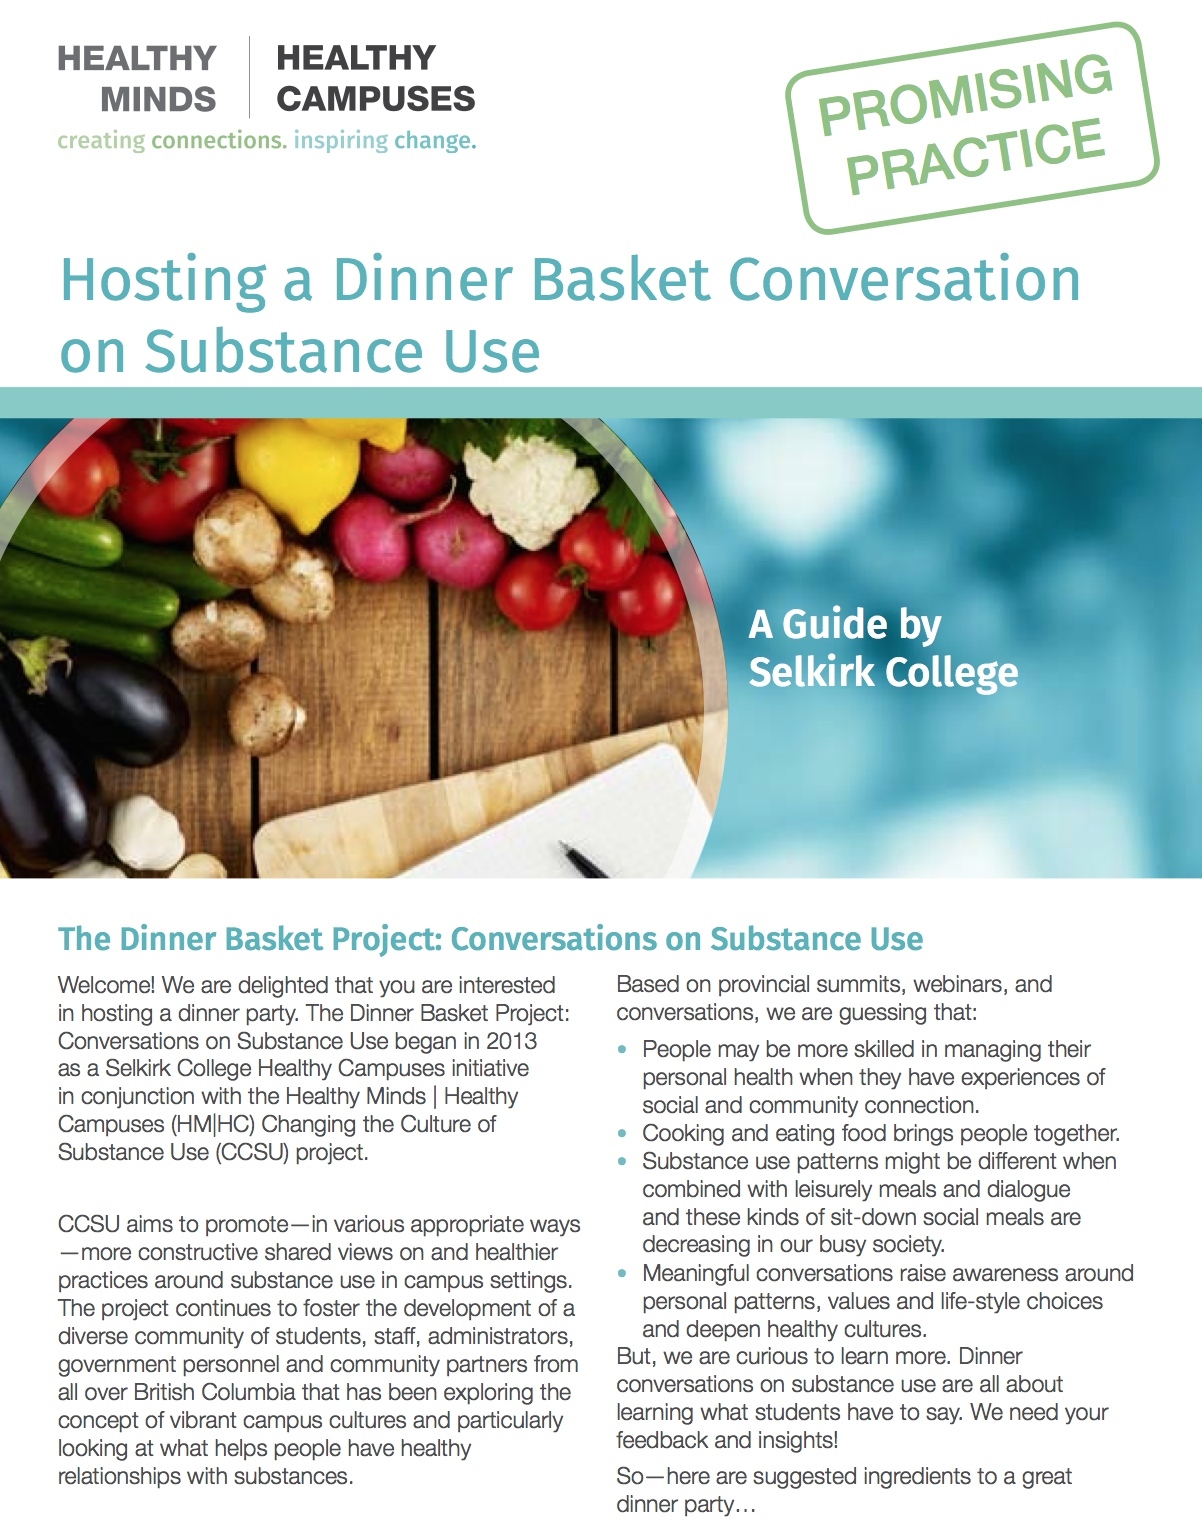 Hosting a Dinner Basket Conversation on Substance Use